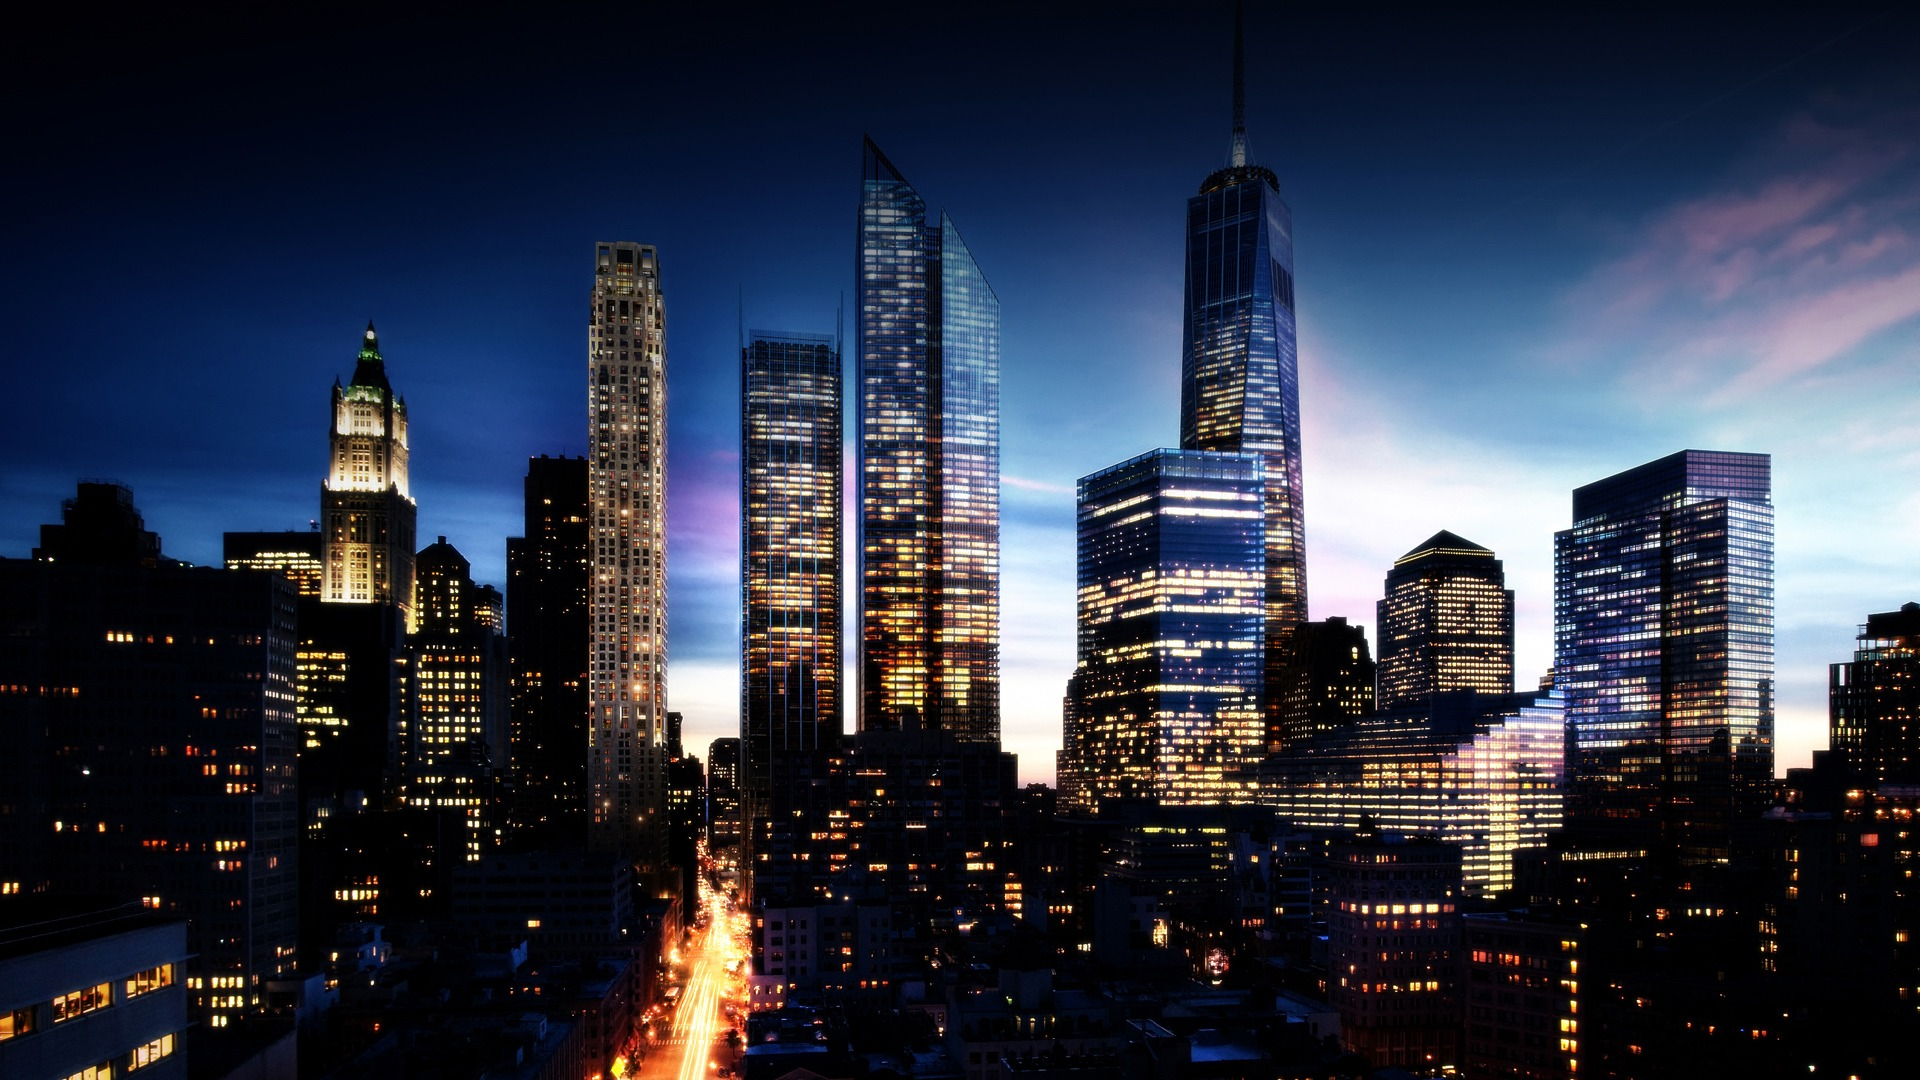 New York Skyline at Night Wallpaper HD 1 City hd background hd 1920x1080